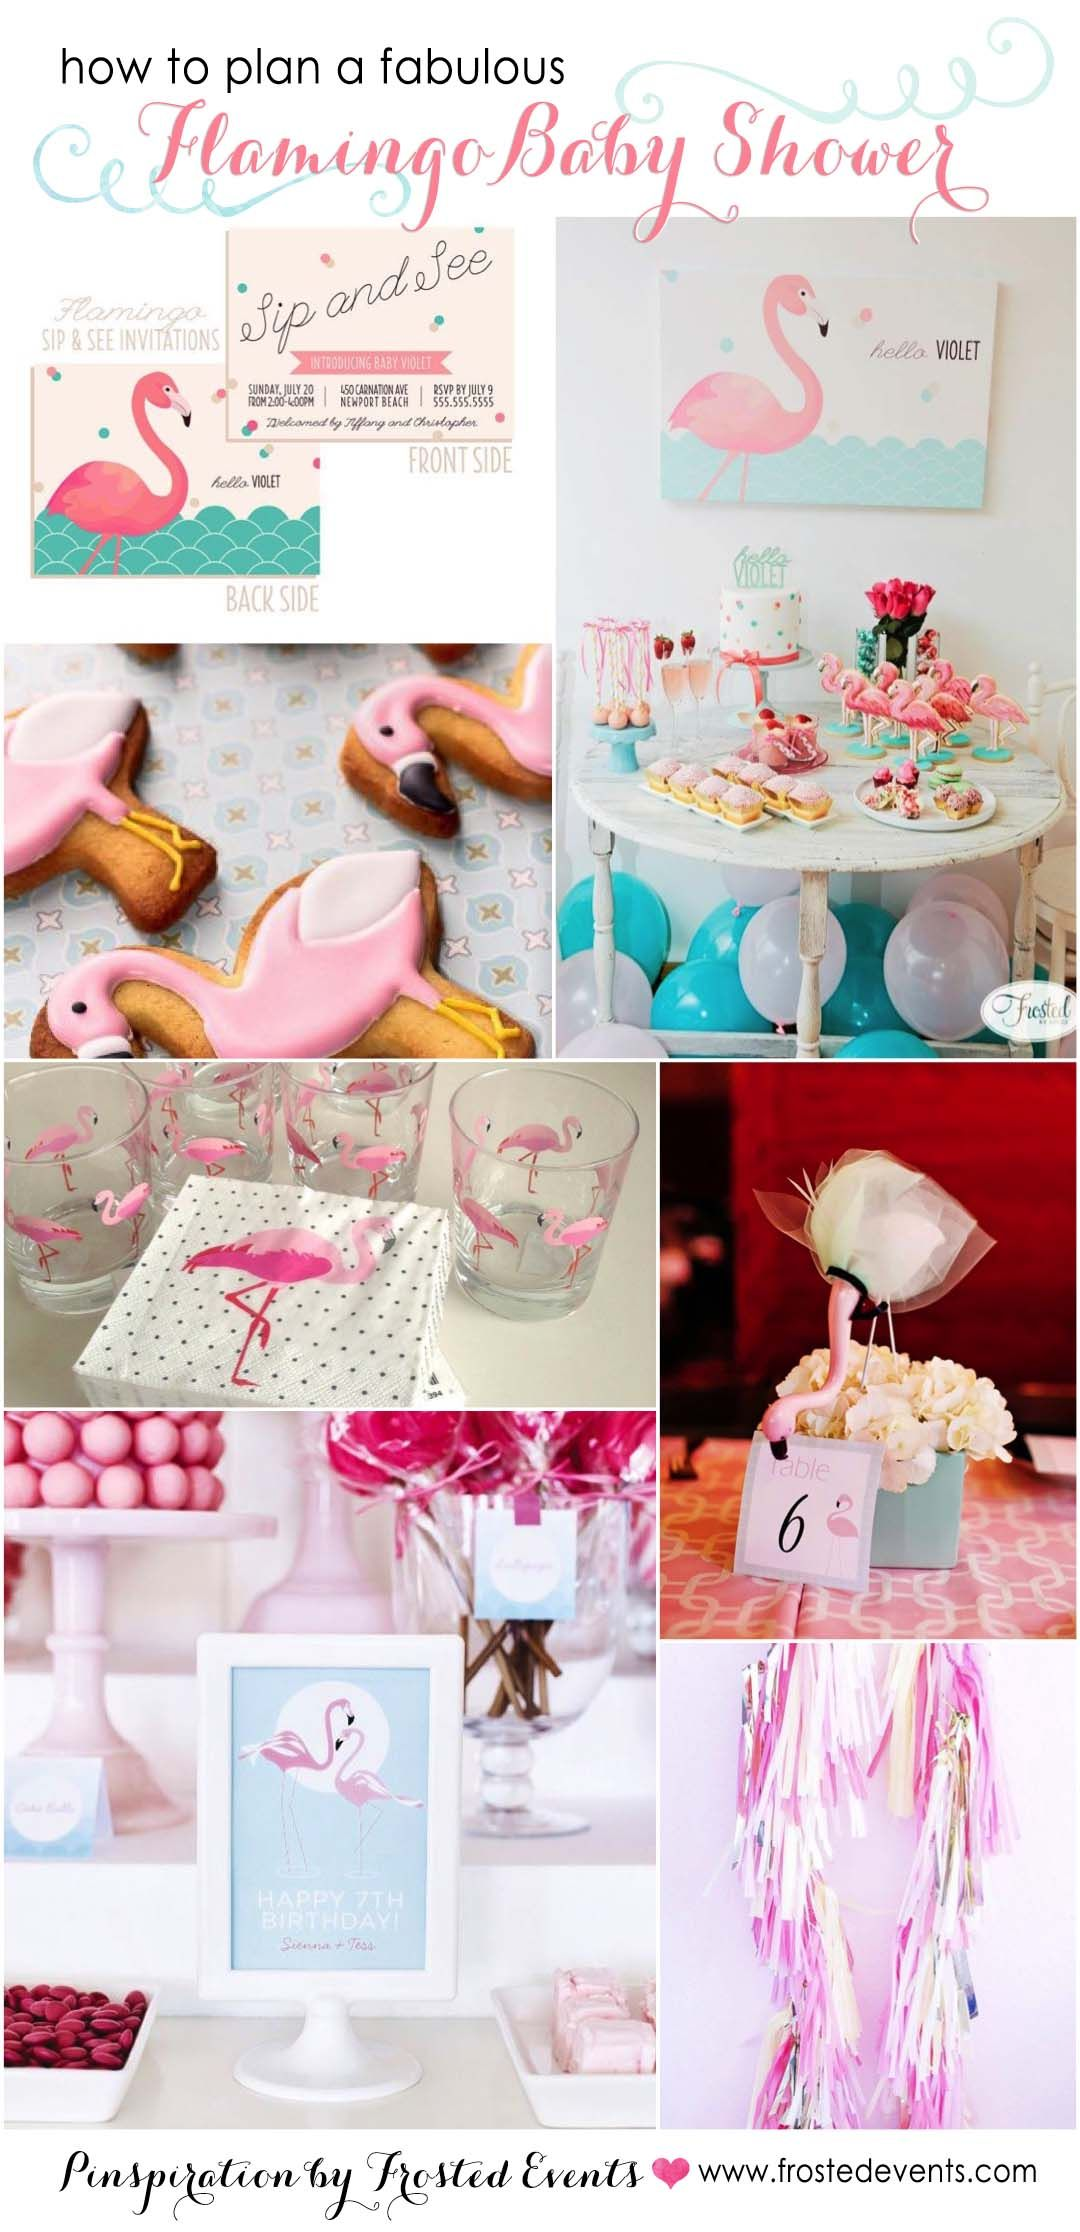 Fabulous Flamingo Theme Baby Shower Inspiration Board Via Frosted Events  @frostedevents Pink Flamingo Party,